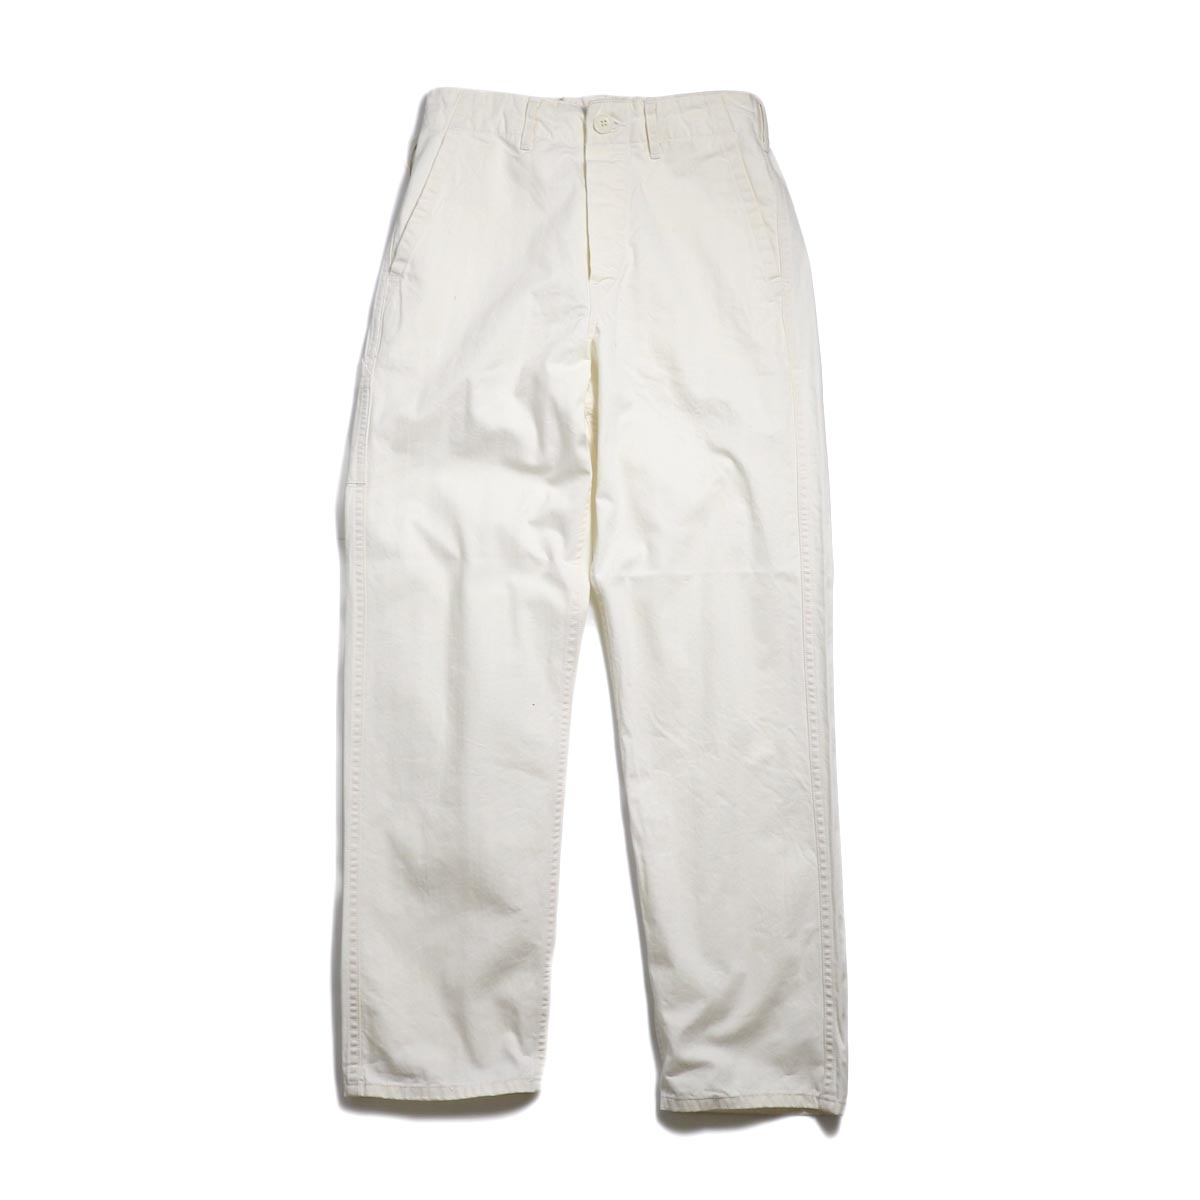 orSlow / French Work Pants -Ecru 正面